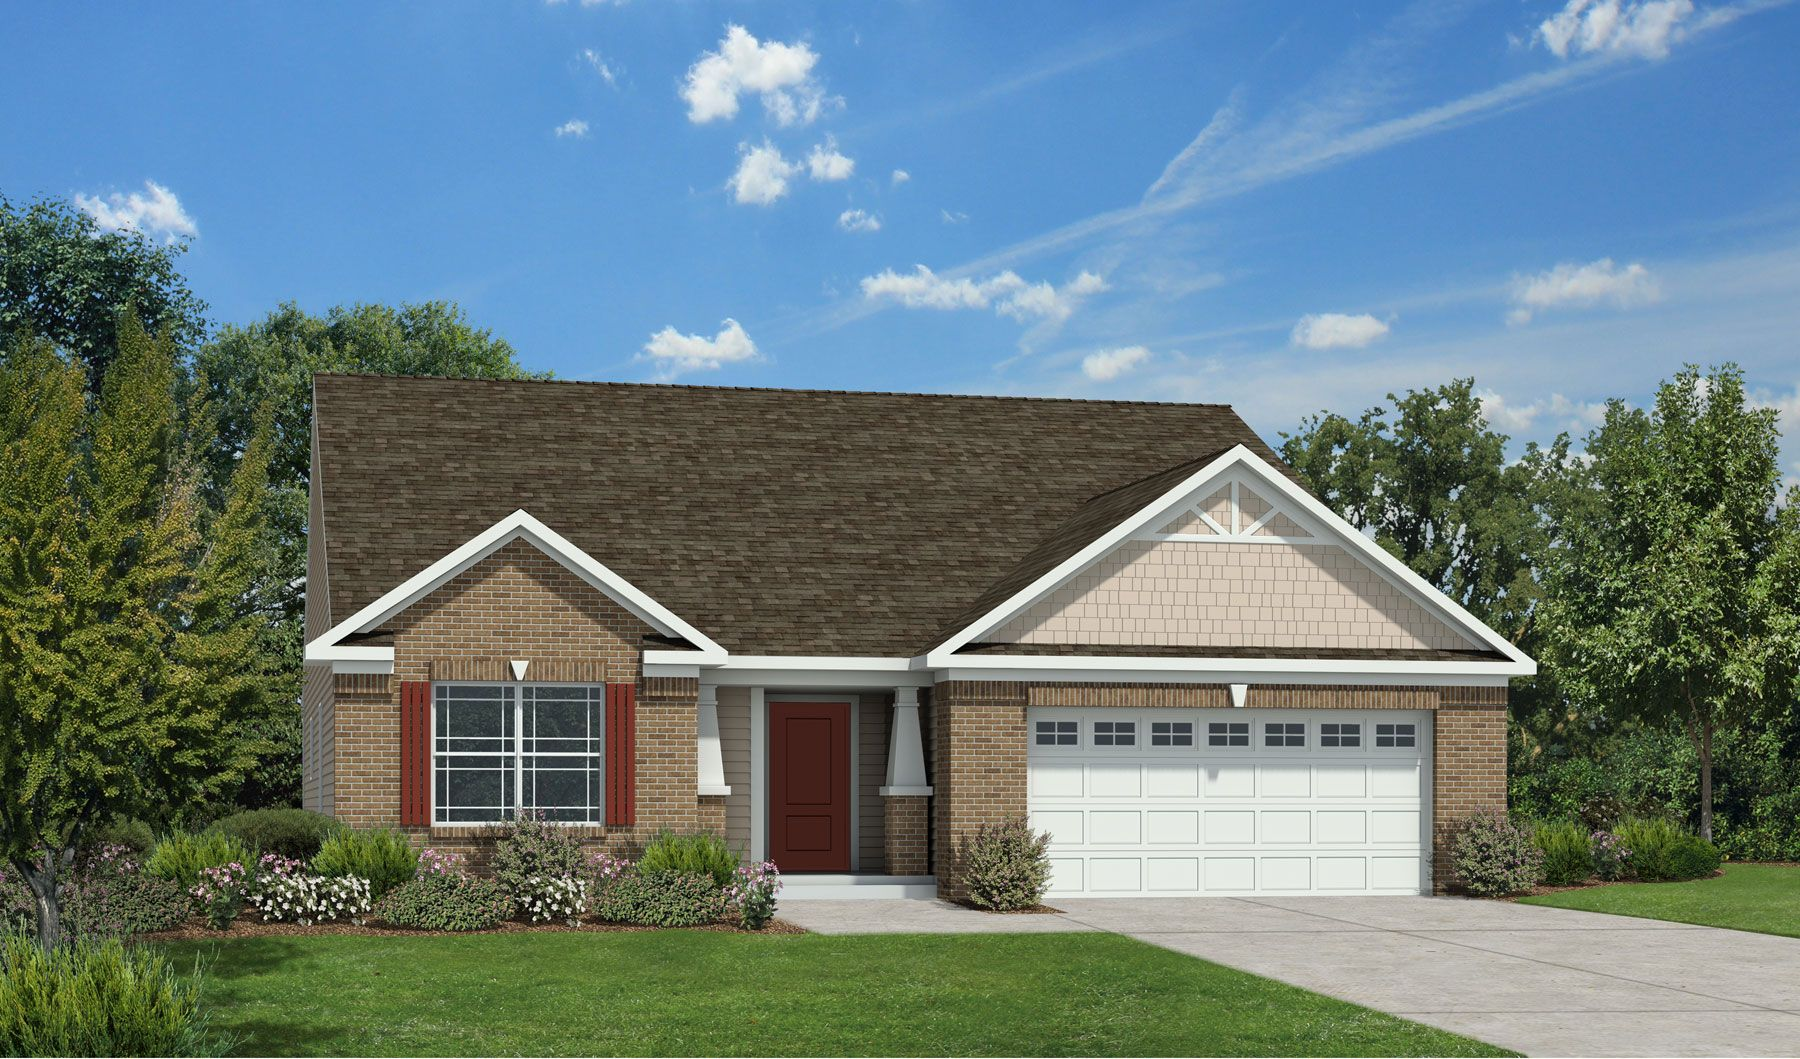 Westport homes of indianapolis woods at traders point for Westport homes ranch floor plans